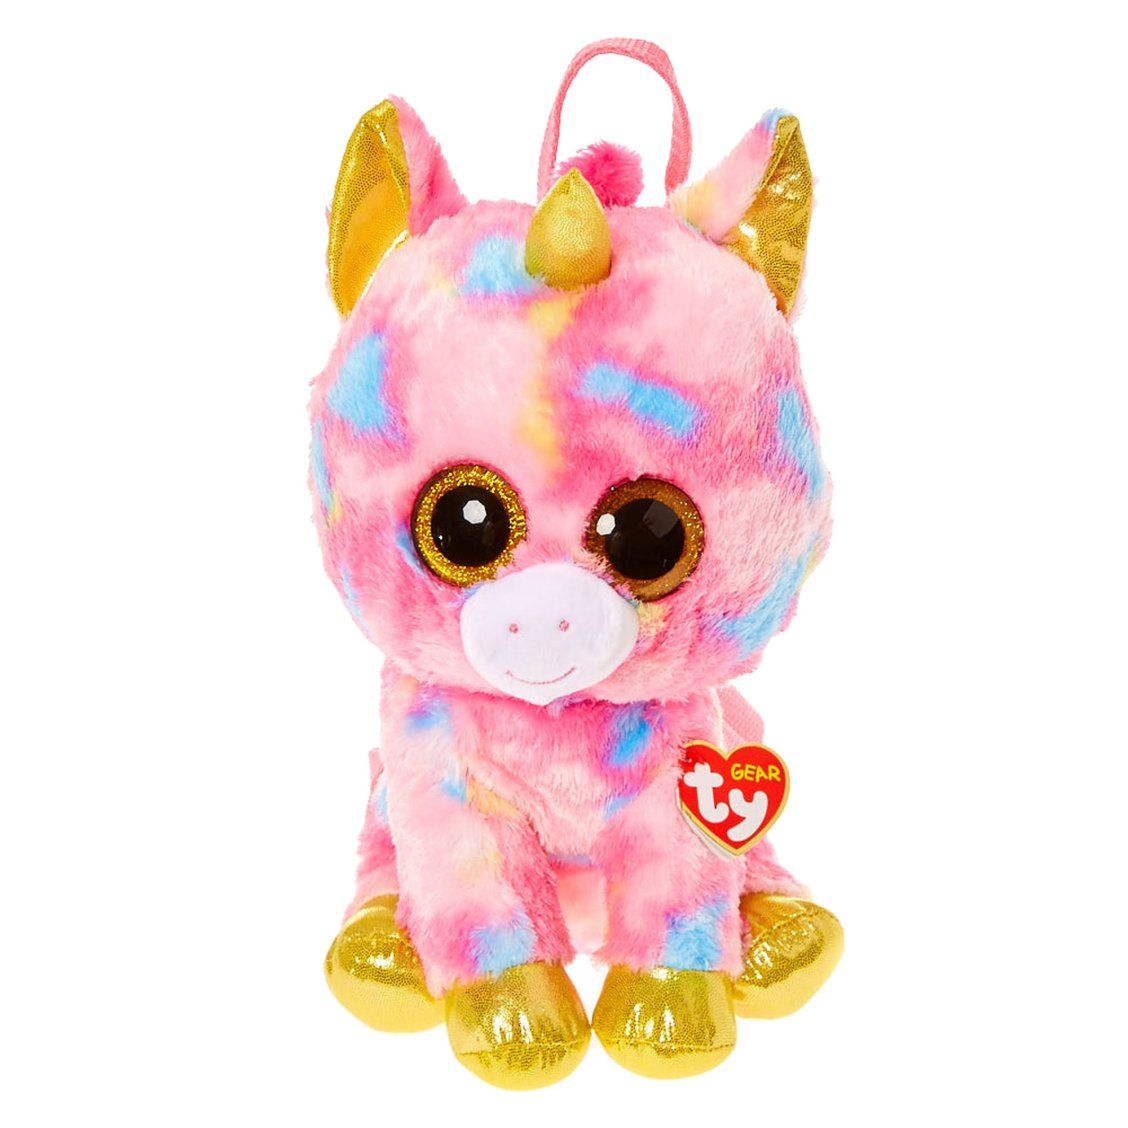 TY Beanie Boo Fantasia the Unicorn Backpack  ad4fef3ffc8c